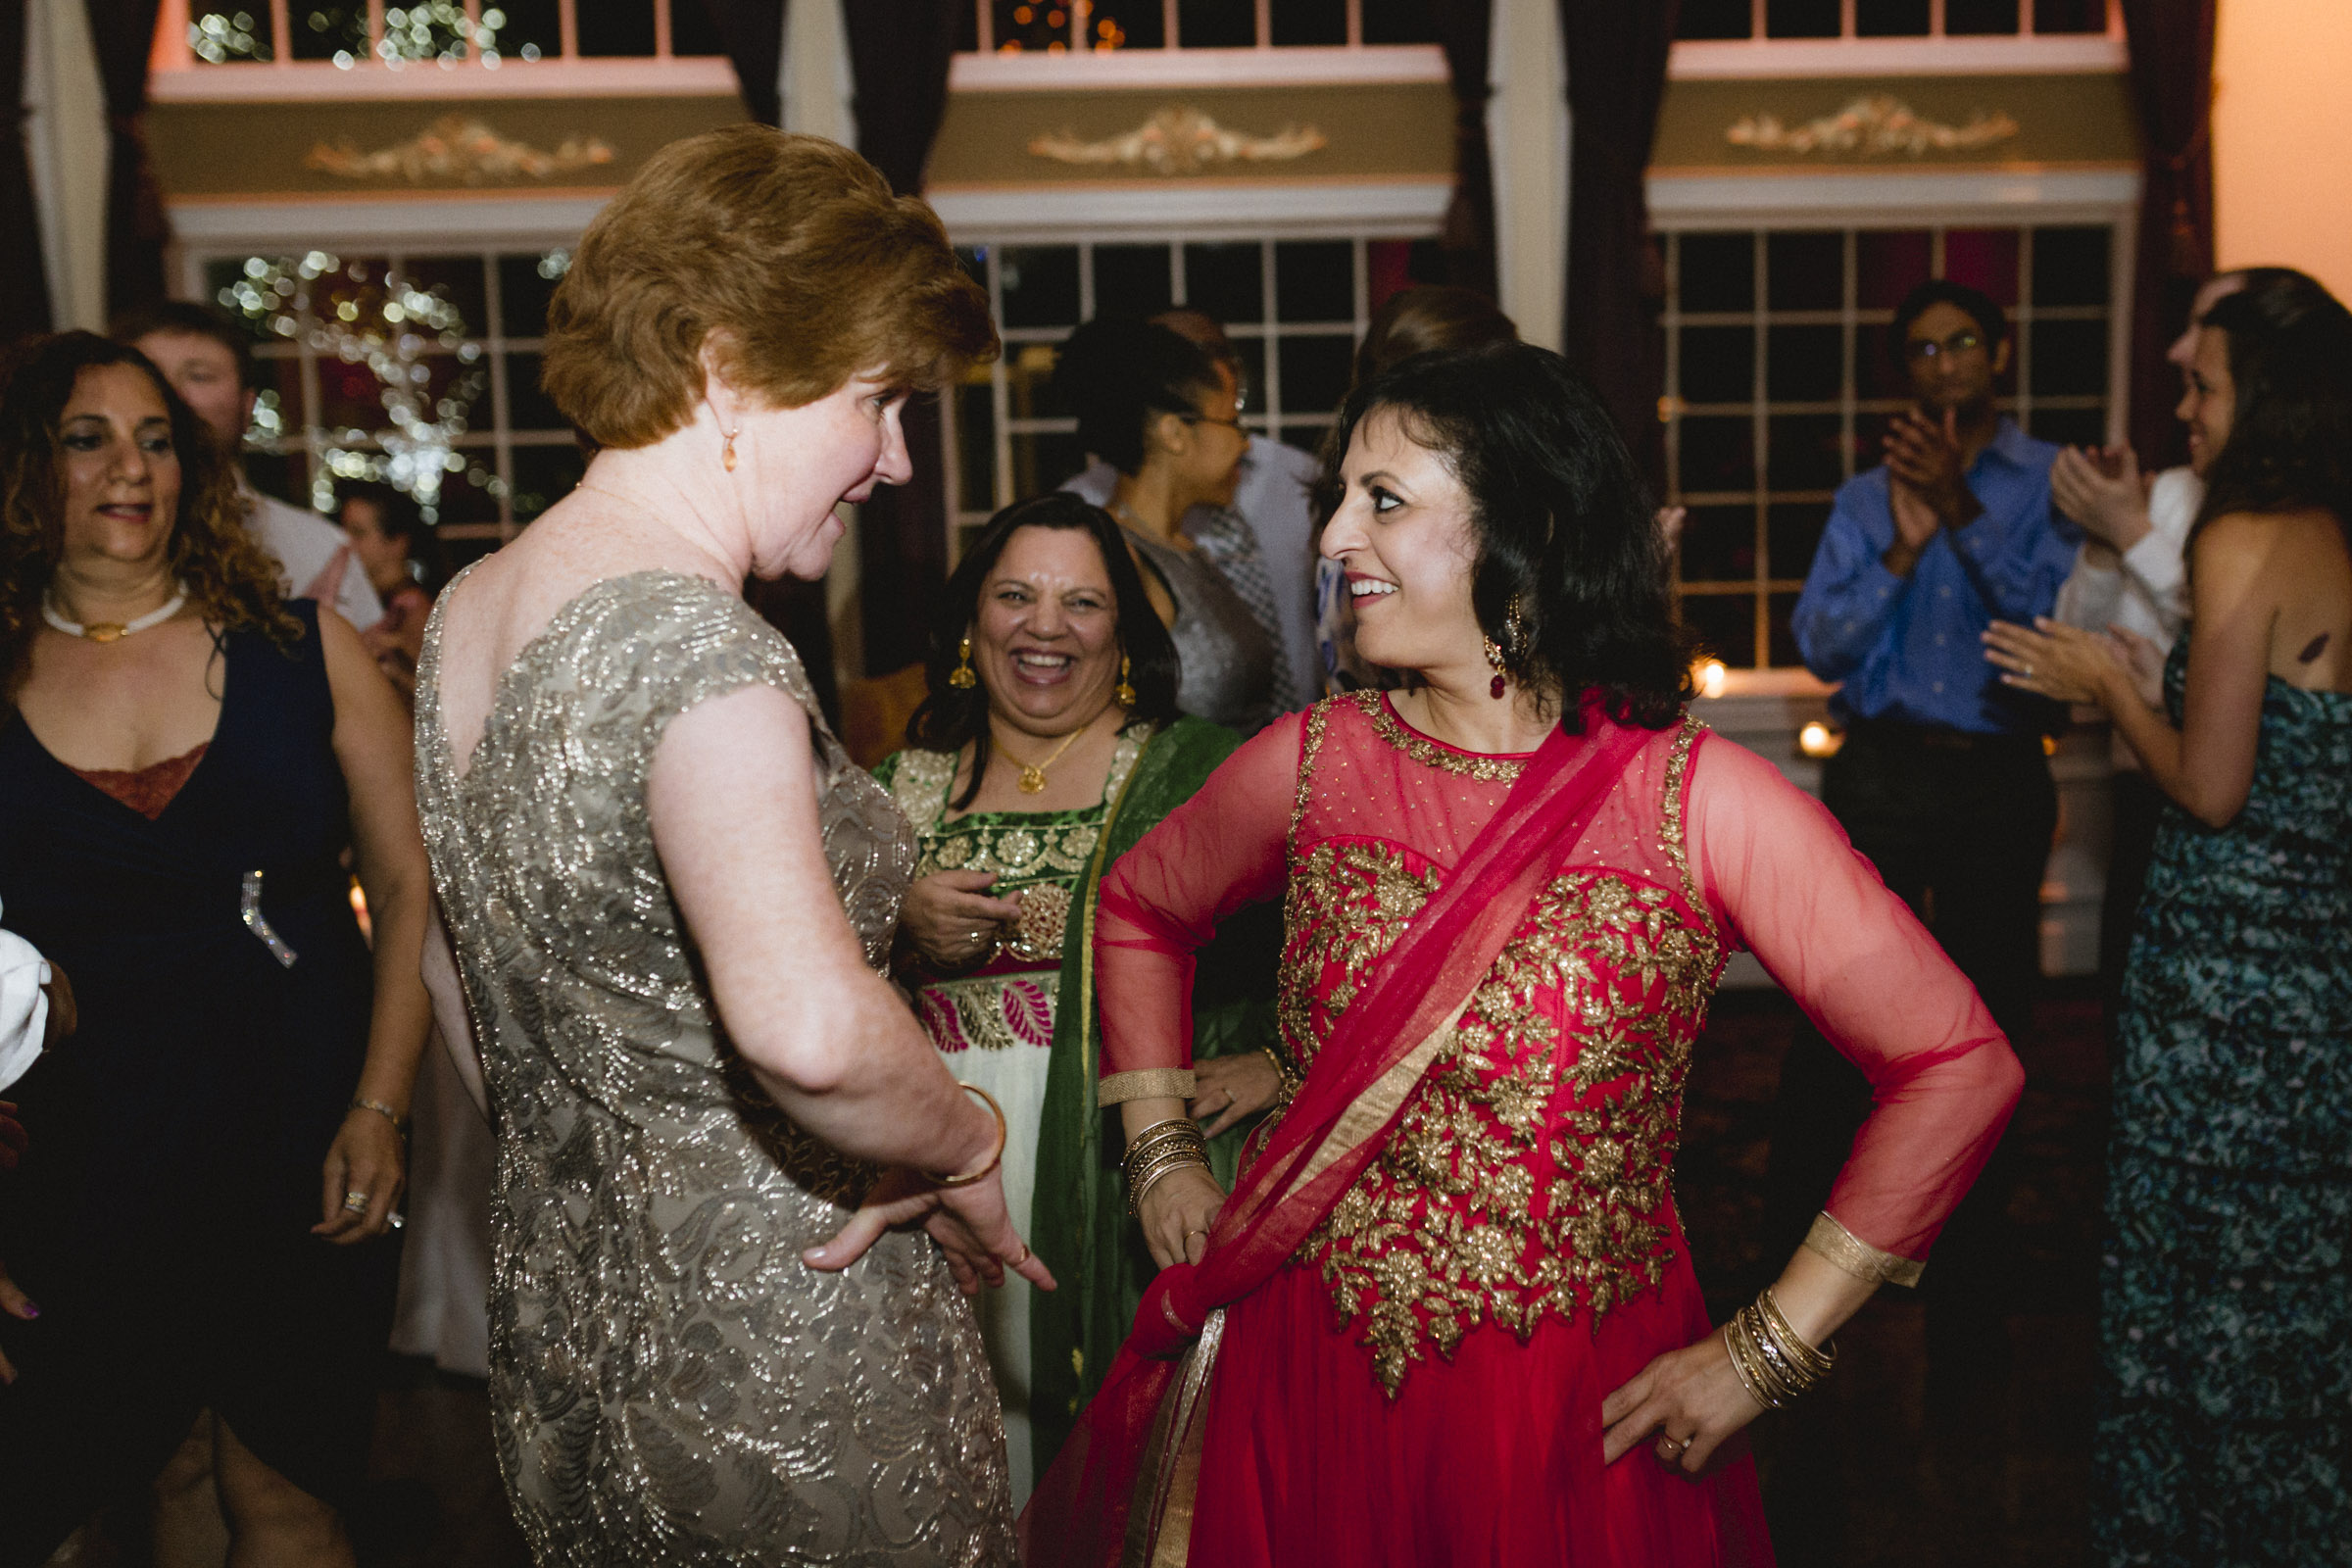 Indian woman teaches mother of bride an indian dance move - Estate at Florentine Gardens wedding - Hudson Valley Wedding - Kelsey & Anish's wedding - Amy Sims Photography